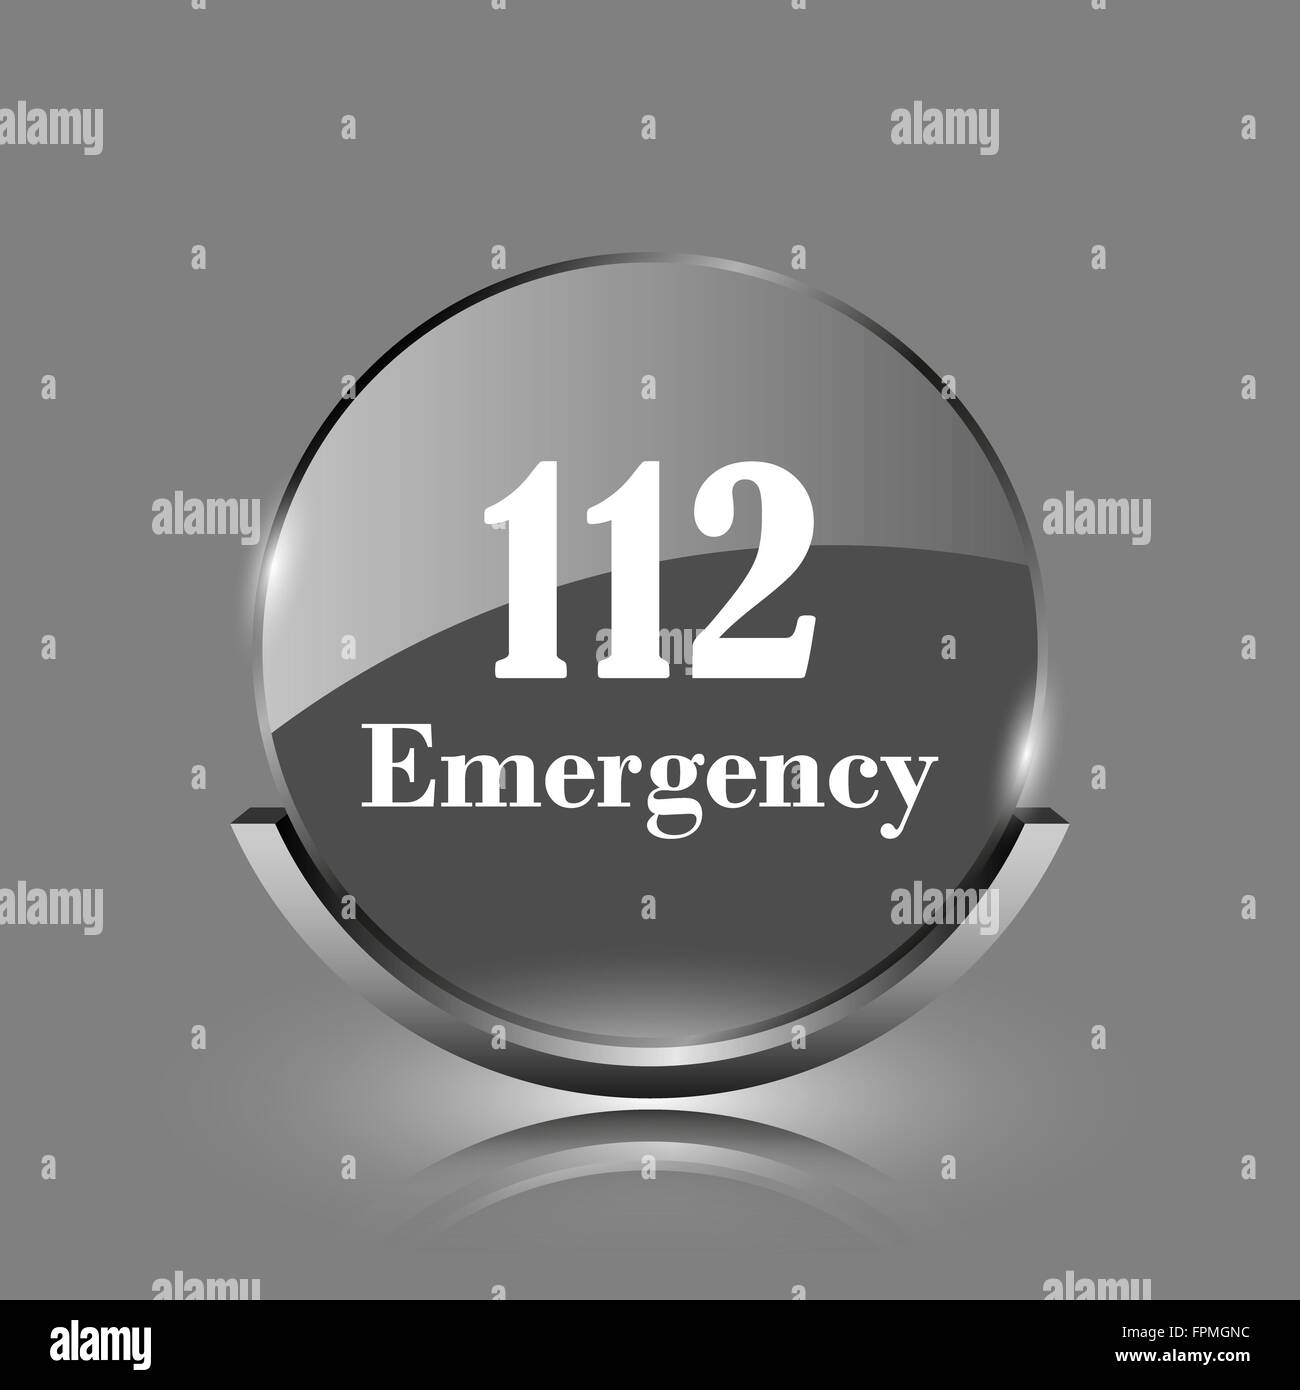 112 Emergency icon. Shiny glossy internet button on grey background. - Stock Image